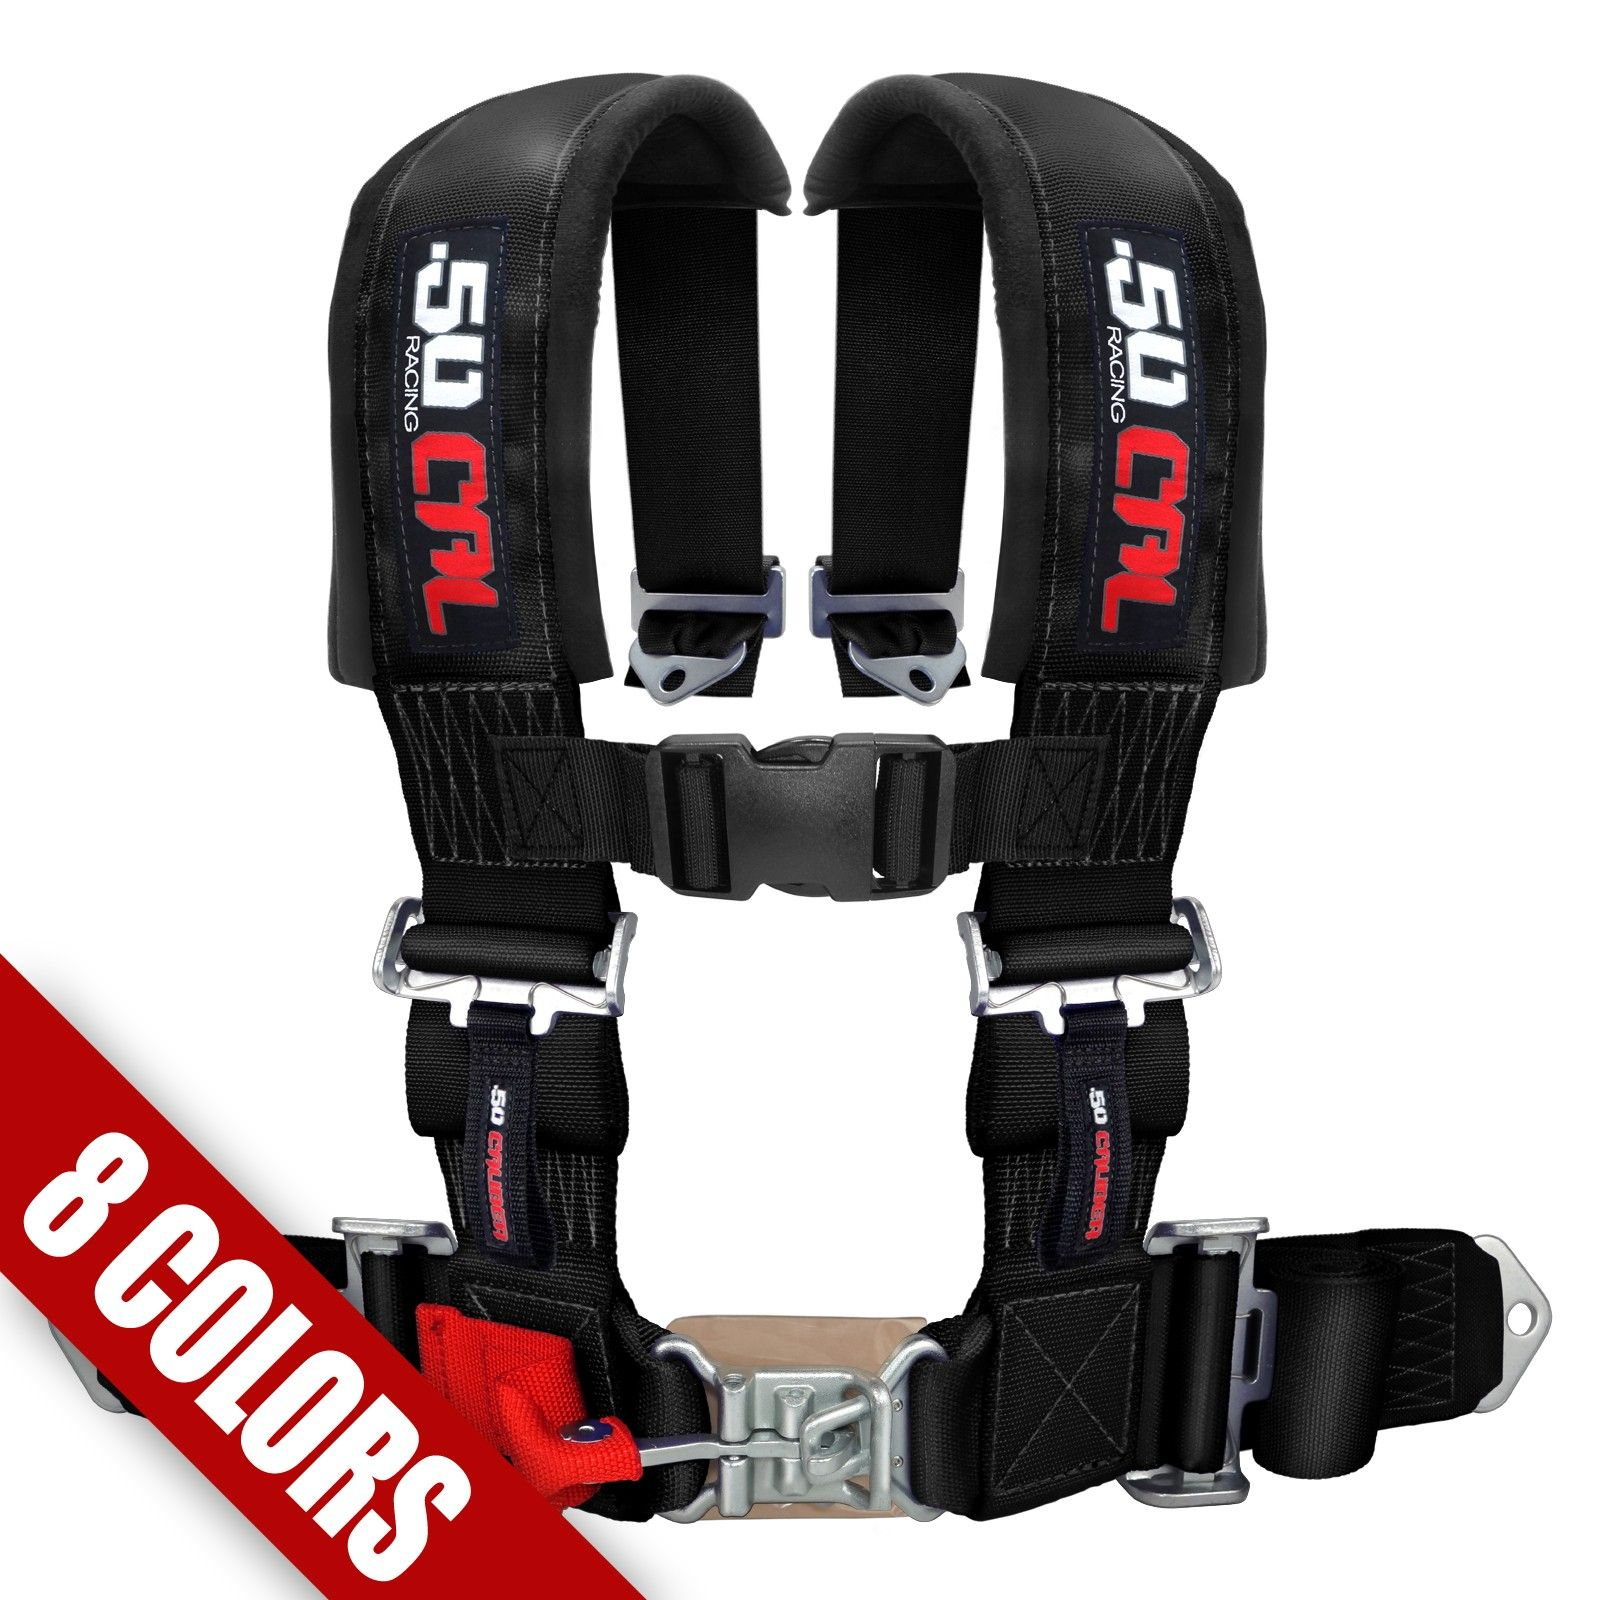 2 4 Point Racing Safety Harness Seat Belt Padded Shoulder